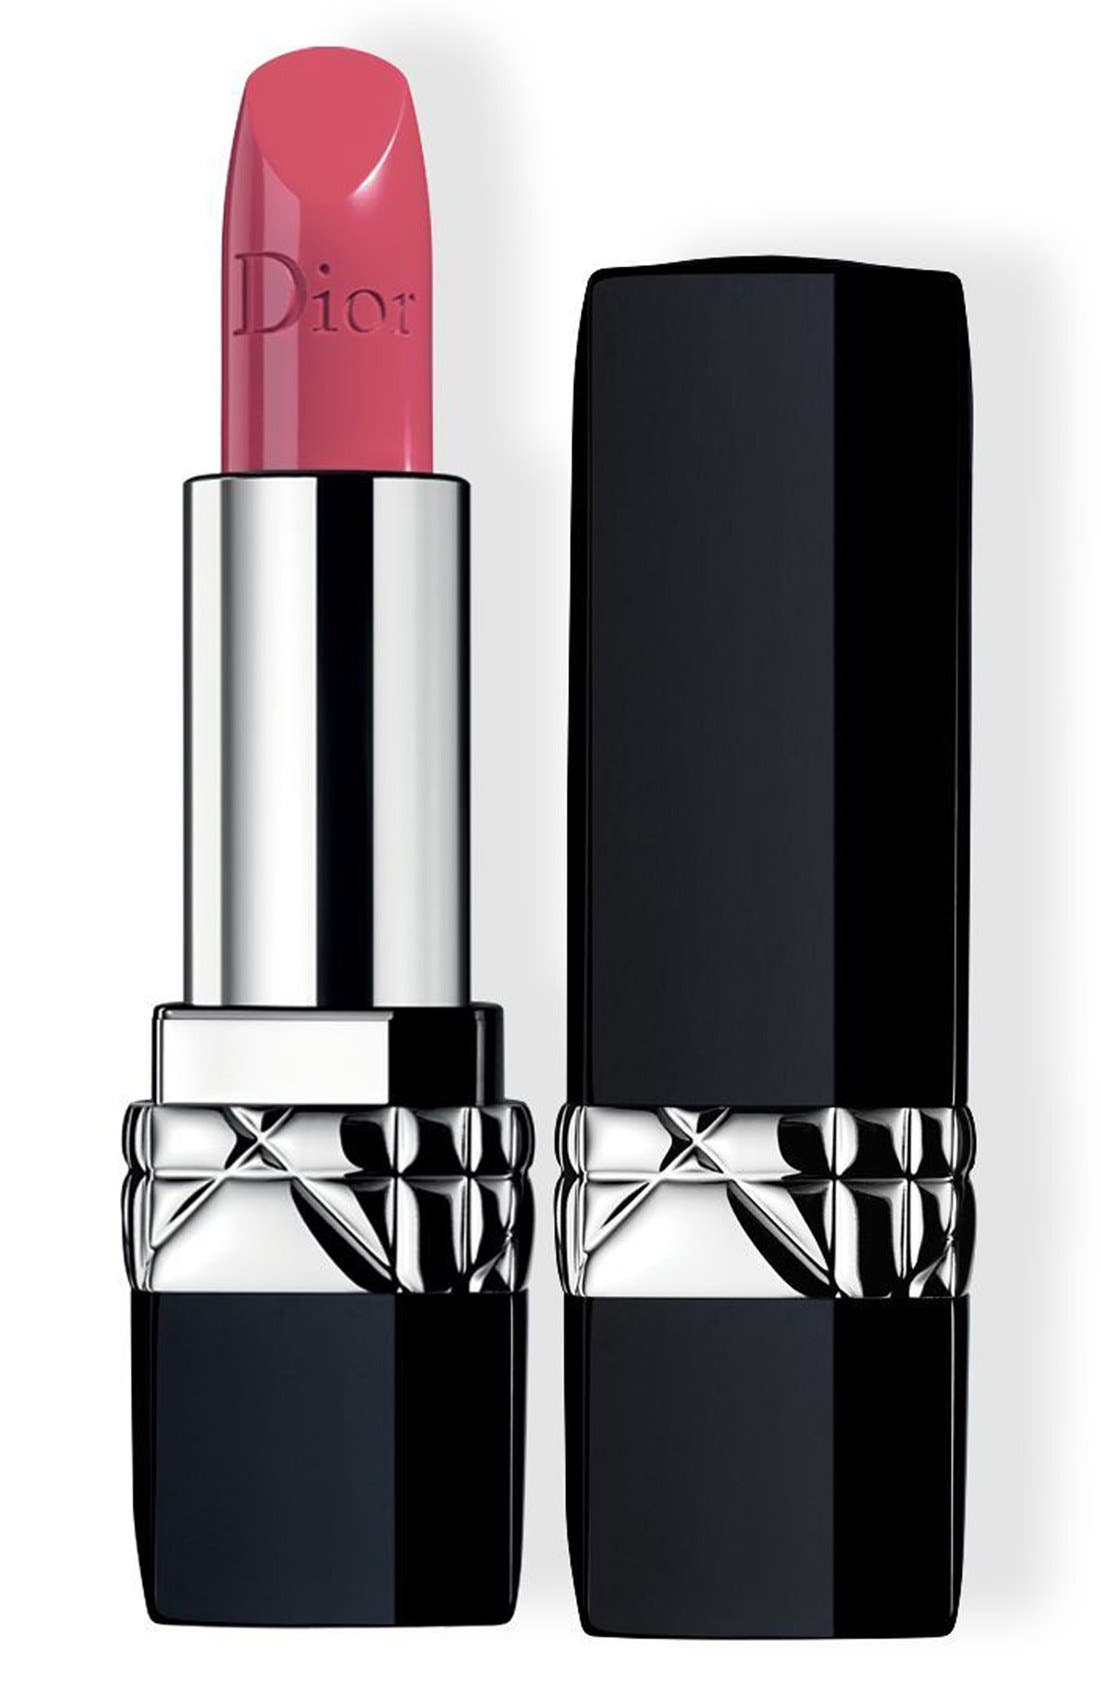 Dior Couture Color Rouge Dior Lipstick - 672 Adoree